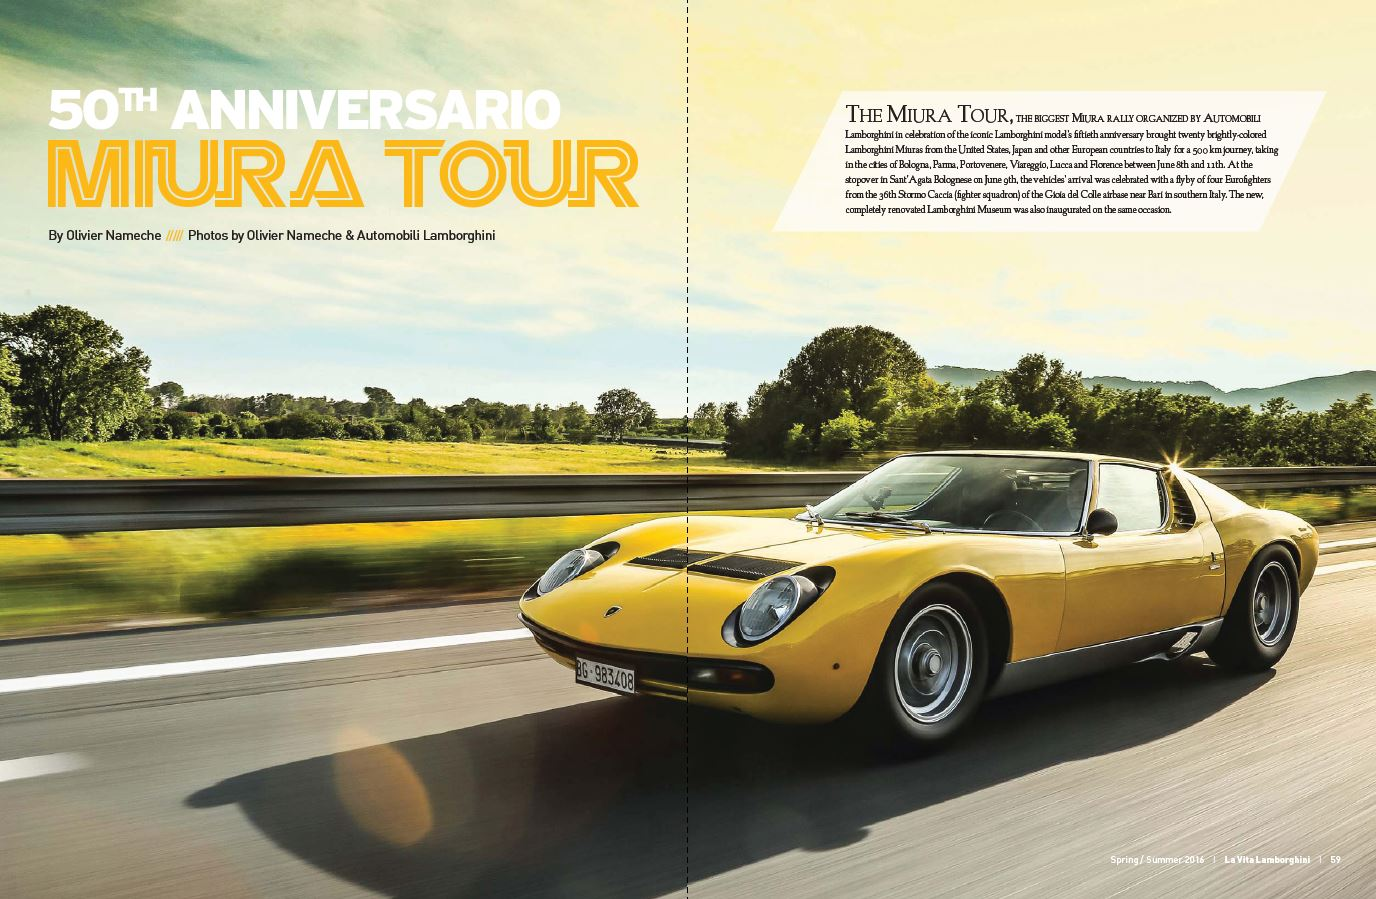 The 50th Anniversario Miura Tour